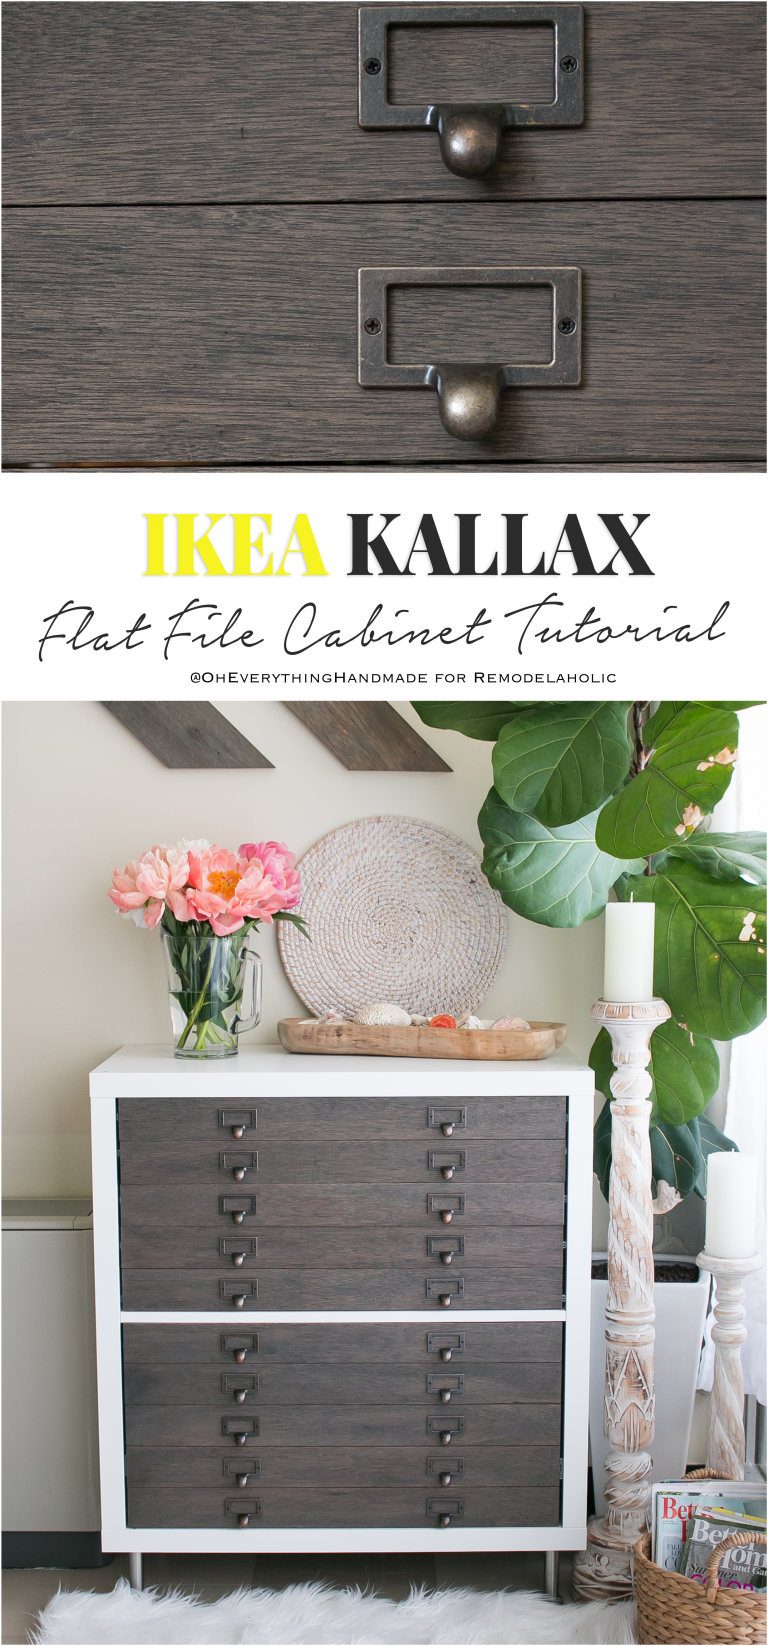 Ikea Hack Kallax Cube Shelf Into Card Catalog Style Flat File Cabinet With Drawers